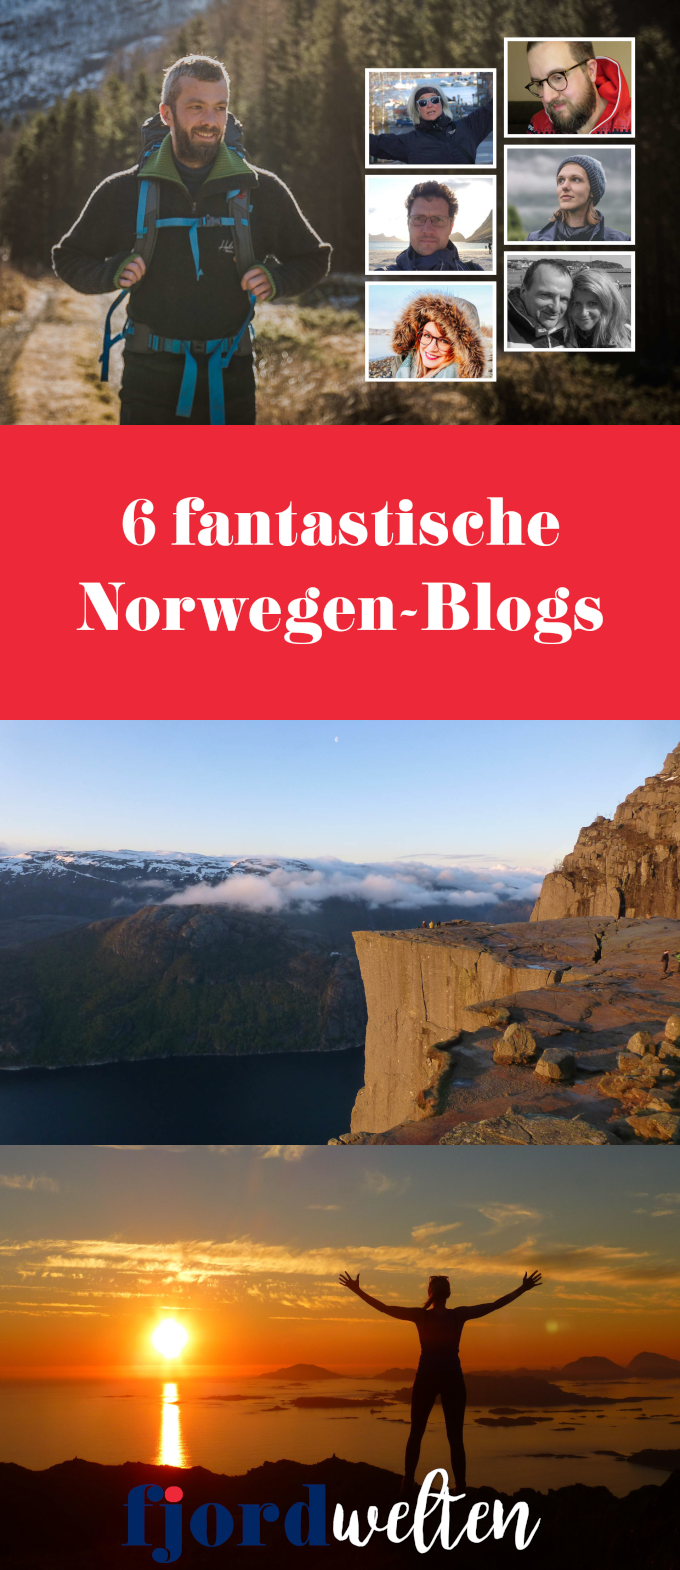 Fantastische Norwegen Blogs